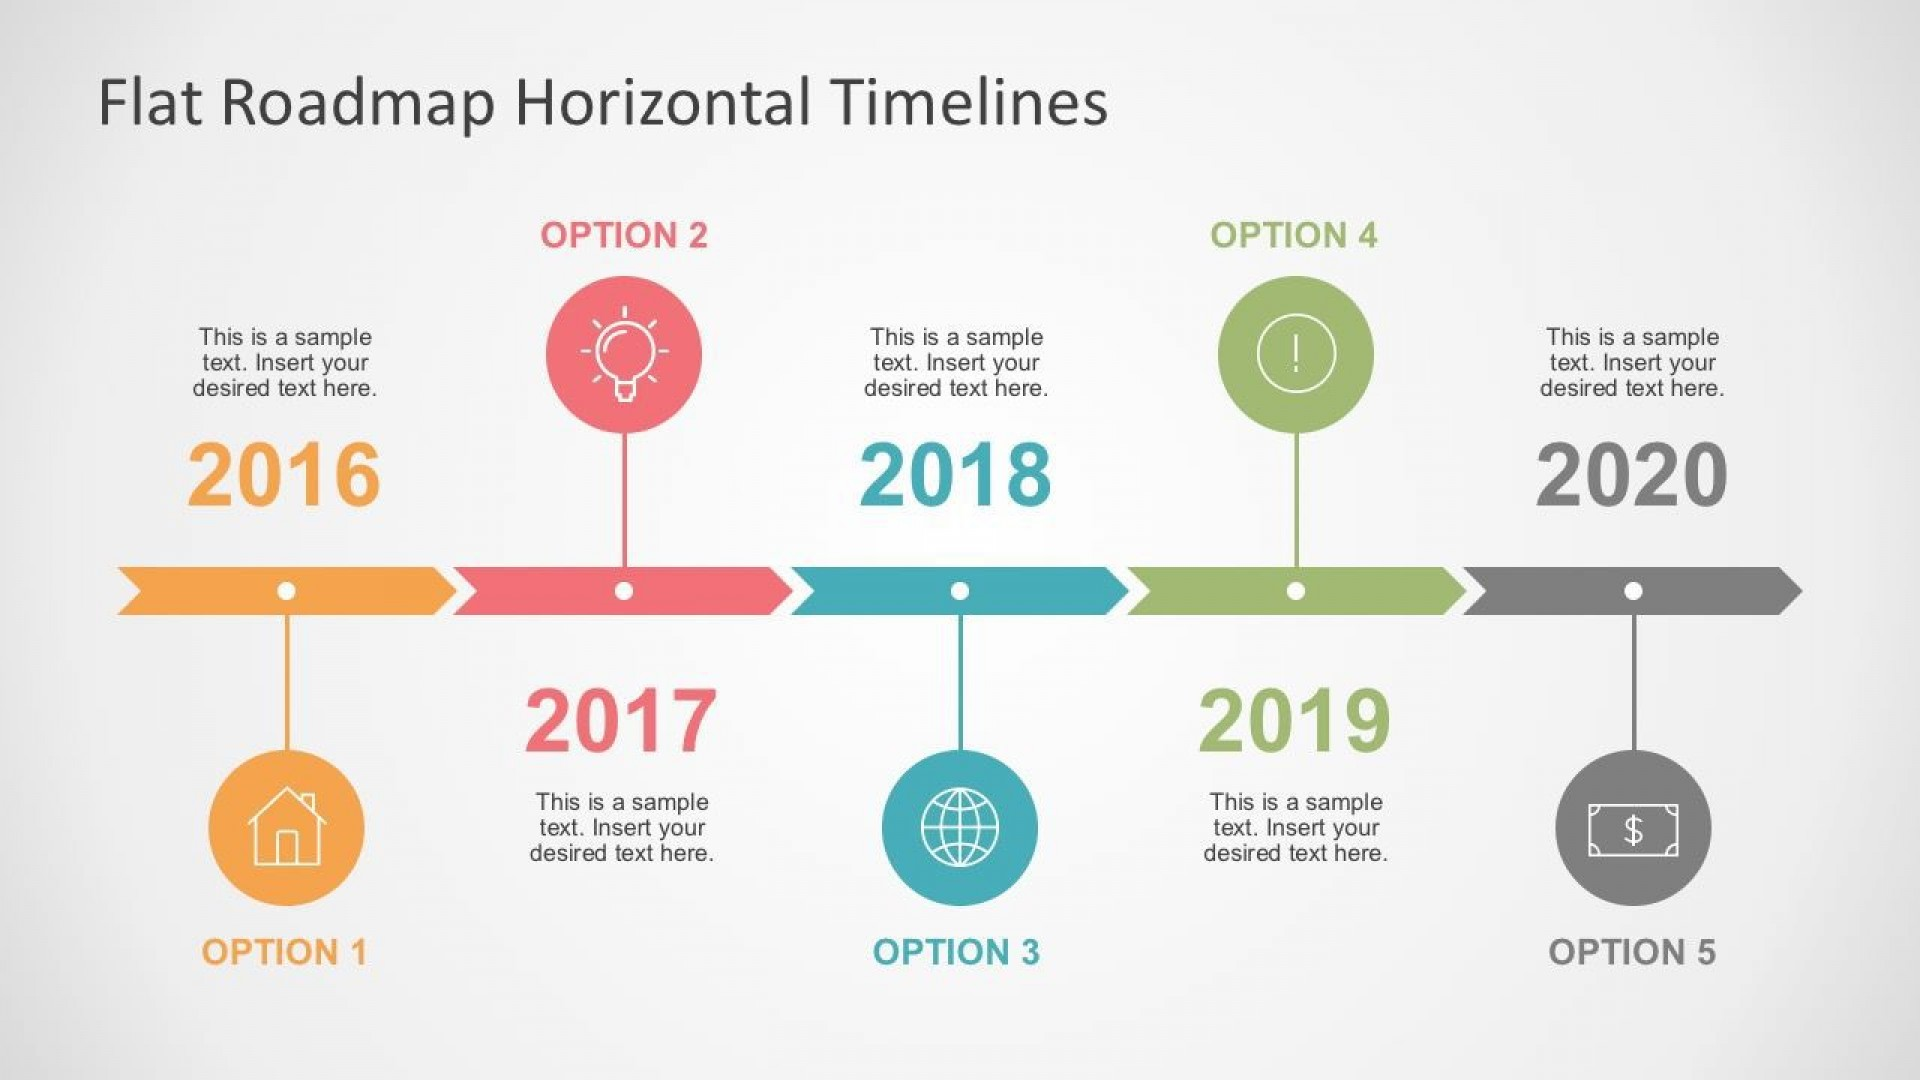 002 Astounding Timeline Infographic Template Powerpoint Download High Definition  Free1920